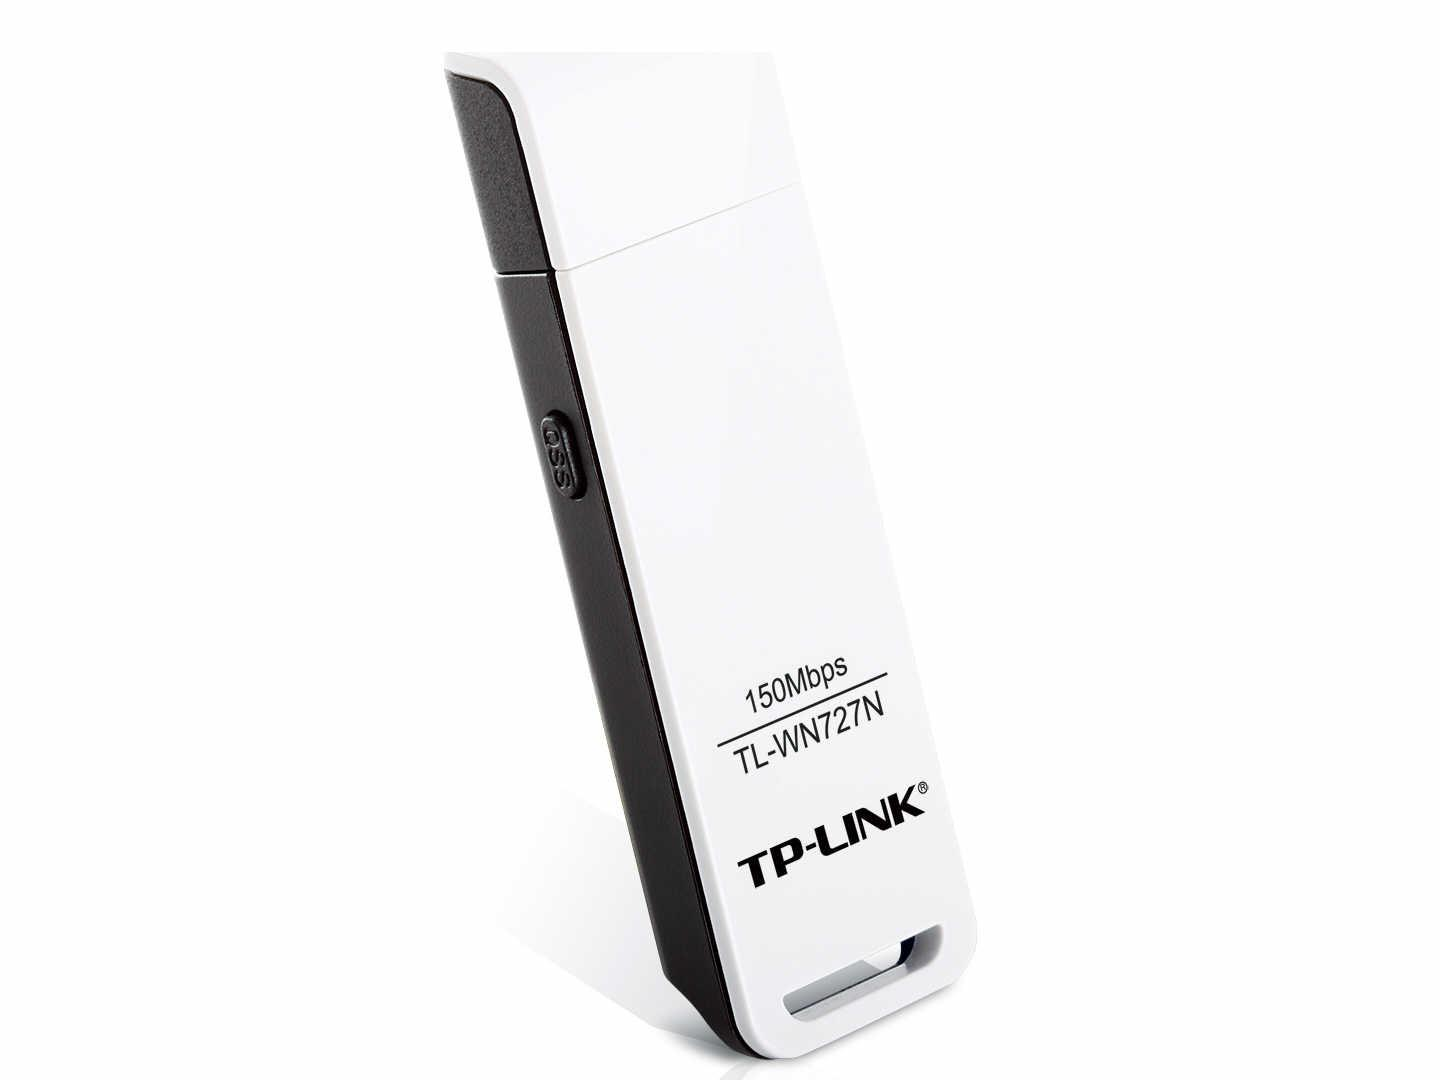 TP-Link 150Mbps Wireless Usb Adapter,  Supports